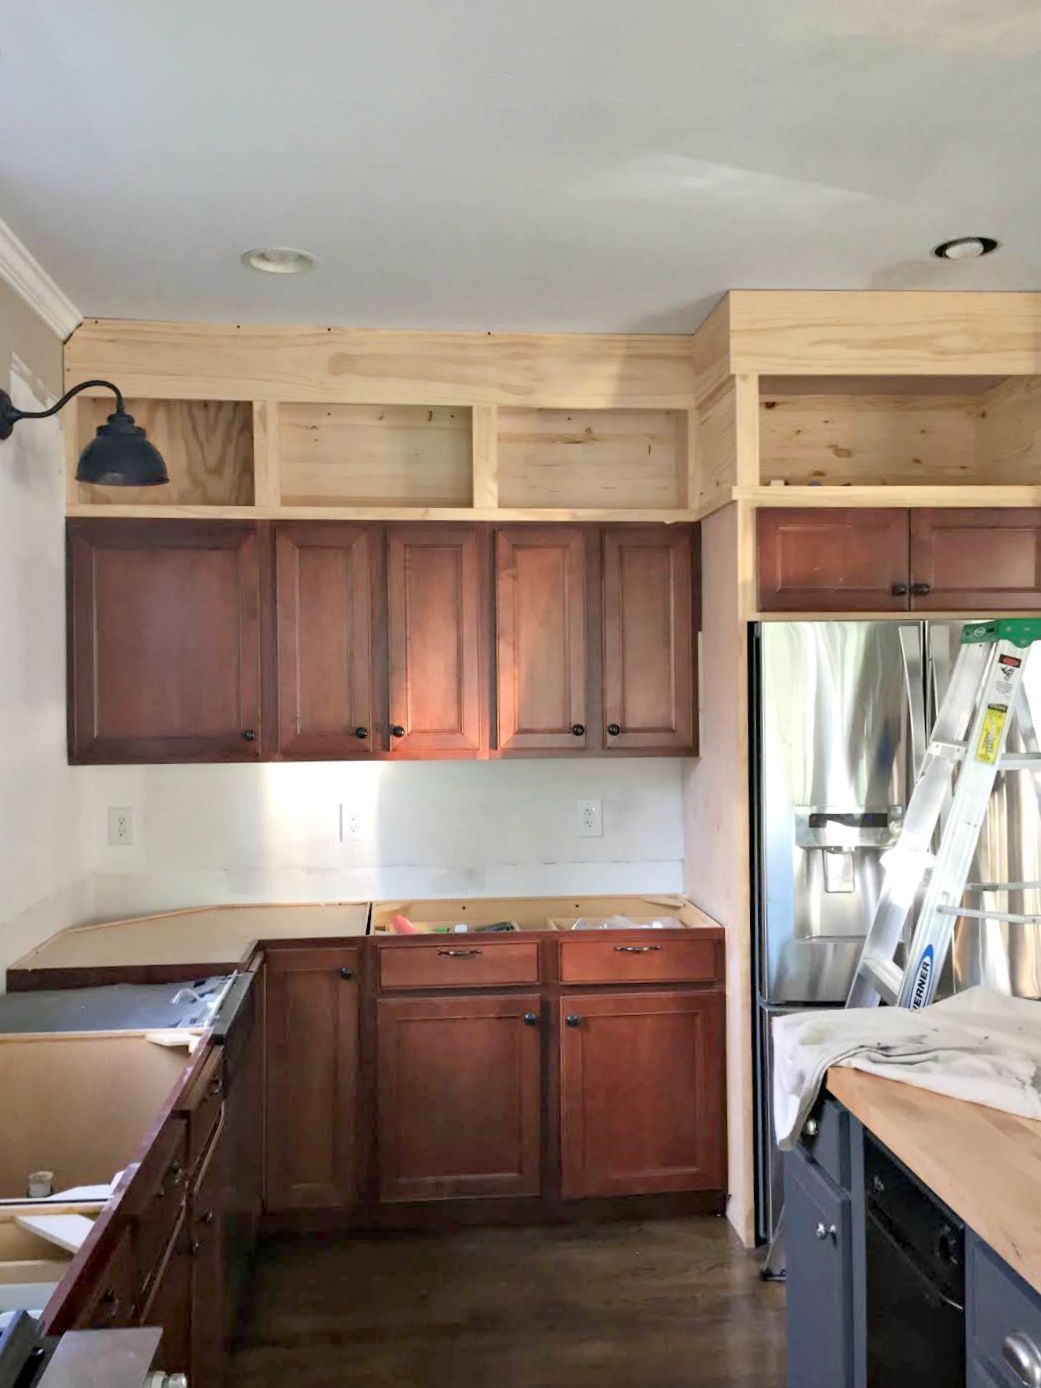 Kitchen cabinet height 9 foot ceilings most of home the kitchen cabinet is the initial furniture to turn old and tainted